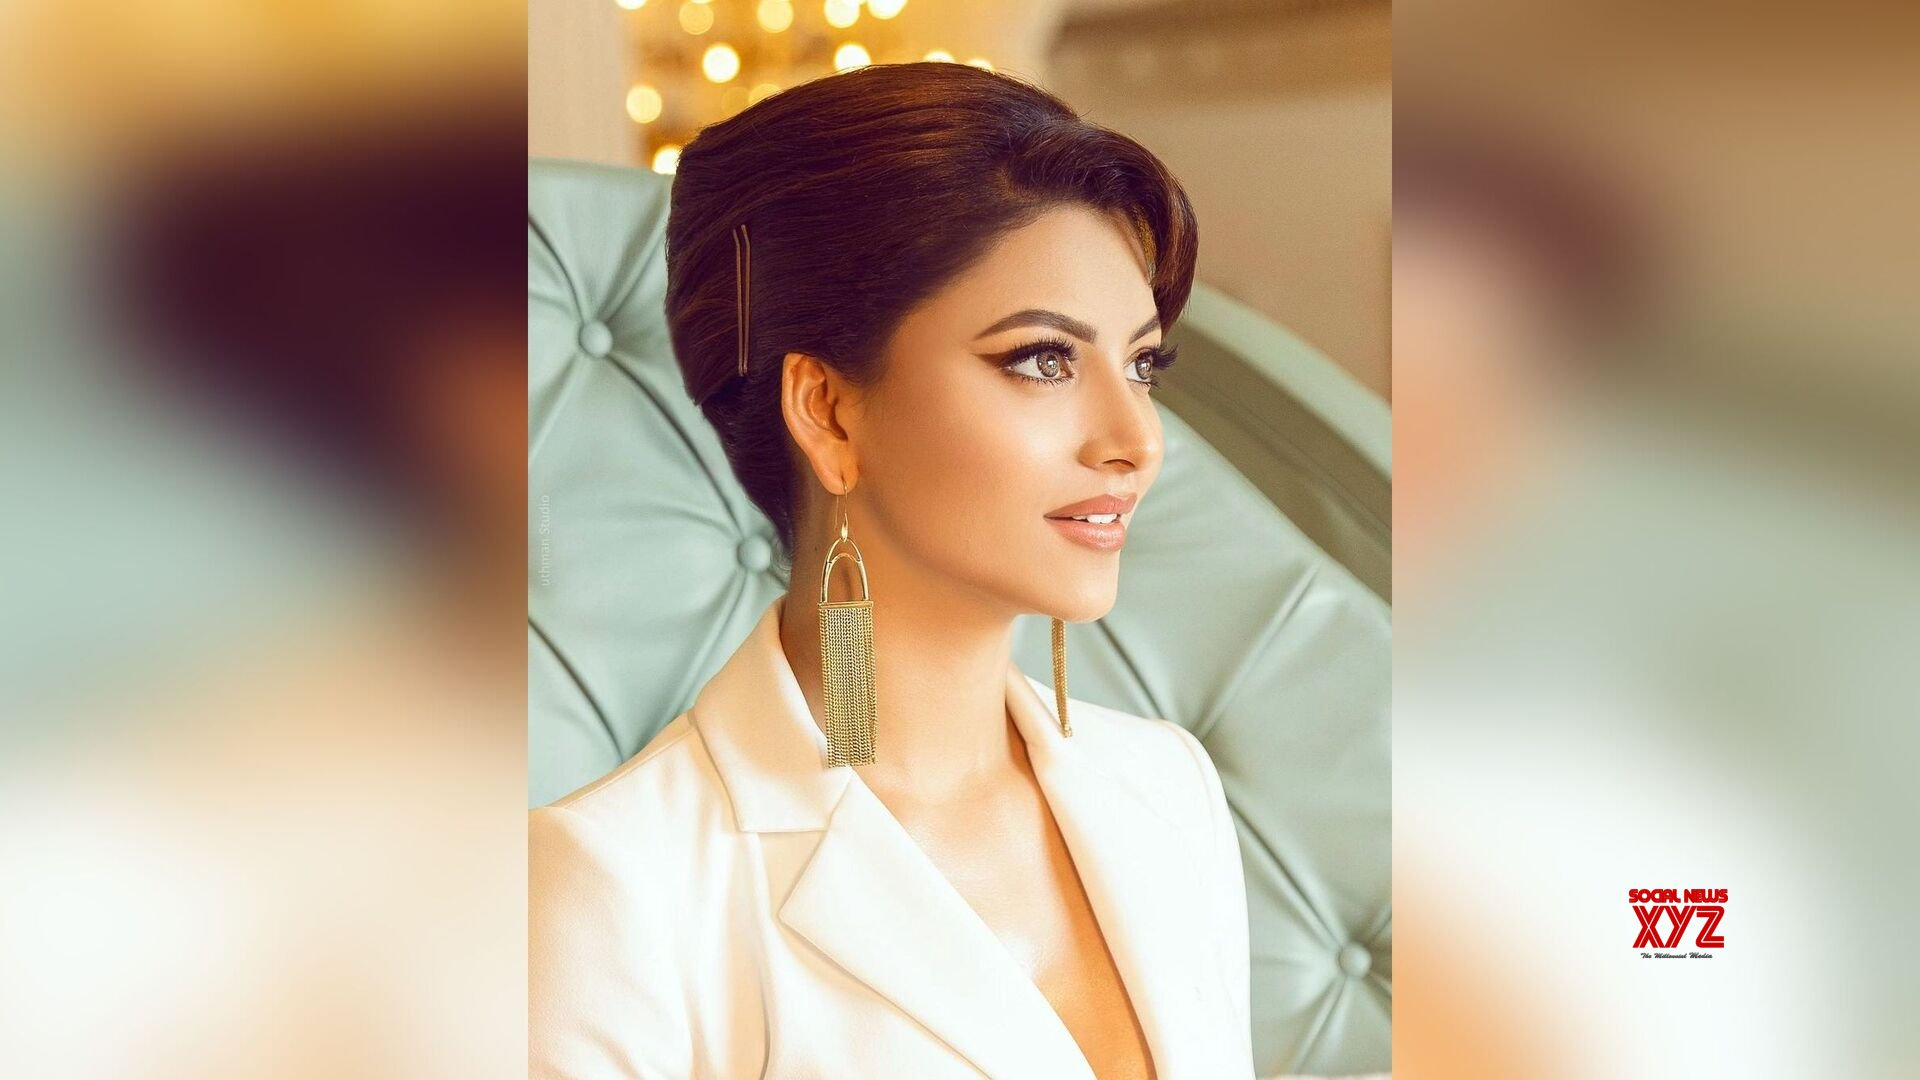 Urvashi Rautela signs a multi million dollar deal with India's largest app